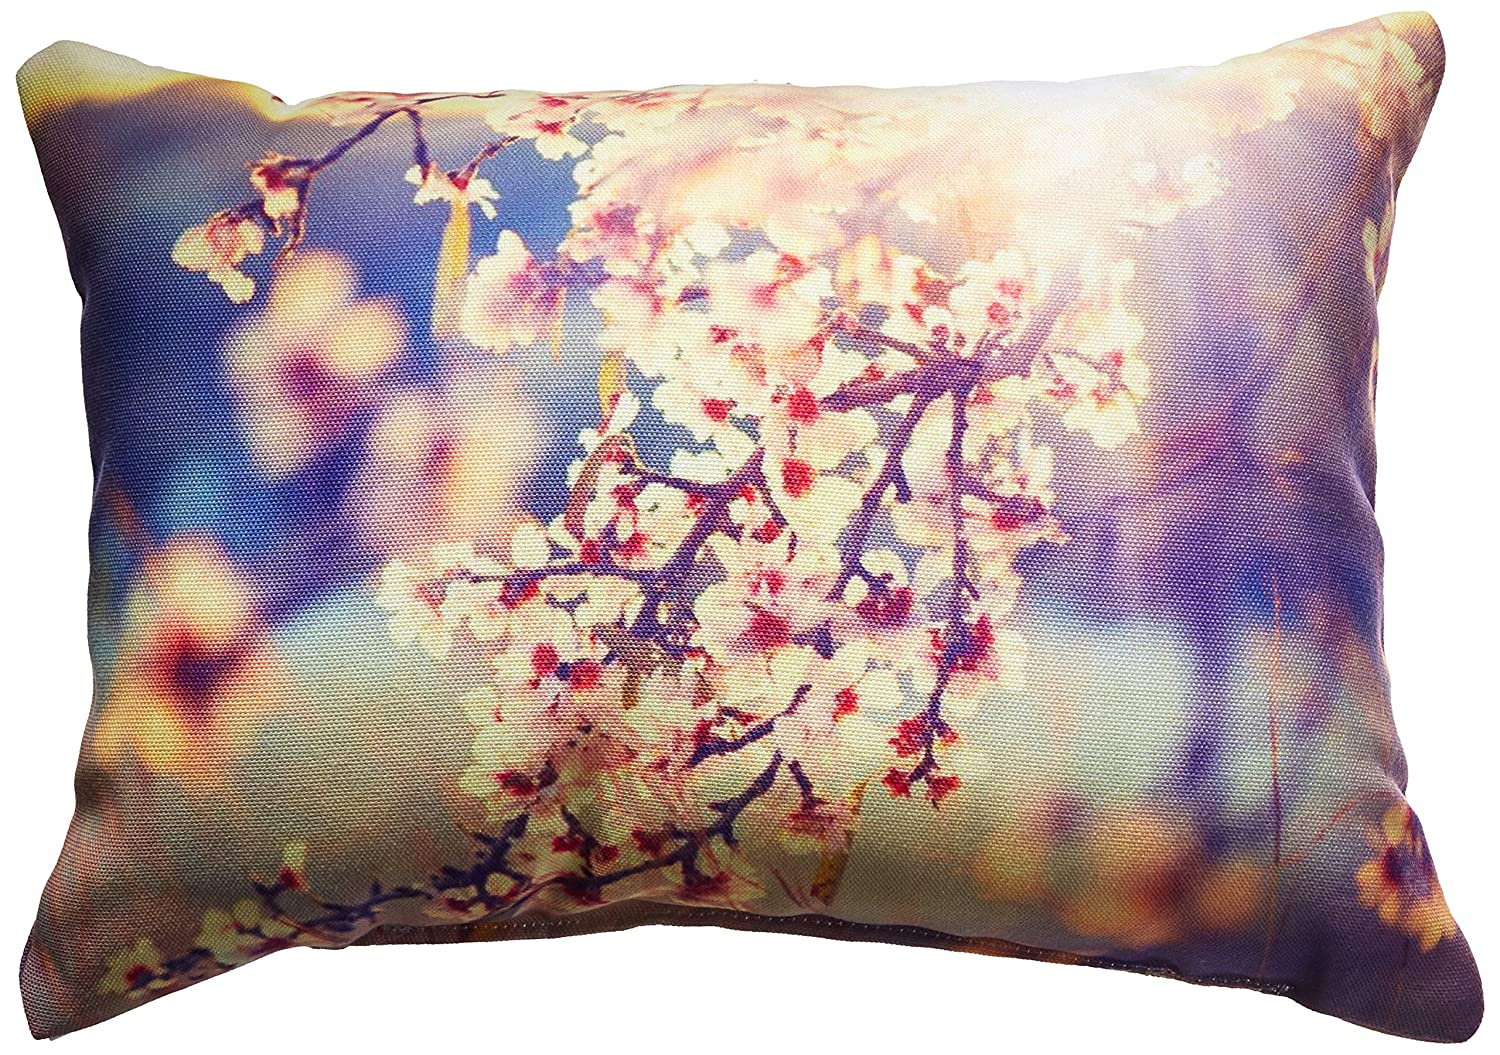 ArtVerse Justin Duane 14 x 10 Spun Polyester Butterfly and Rose Pillow